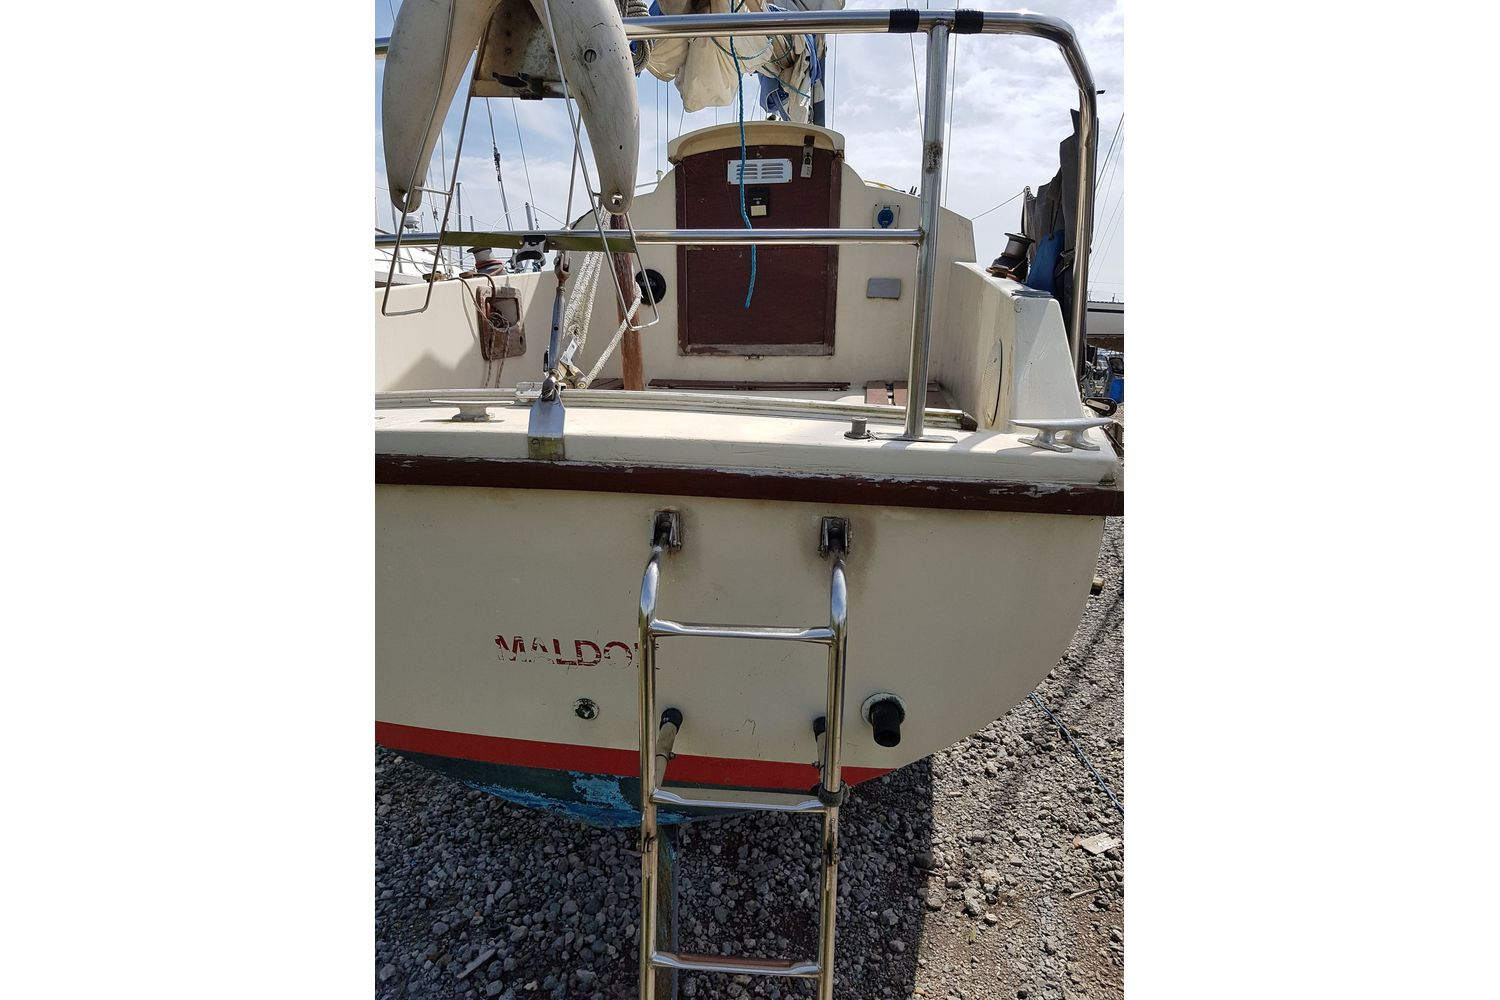 Westerly Pageant 23 - transom and boarding ladder